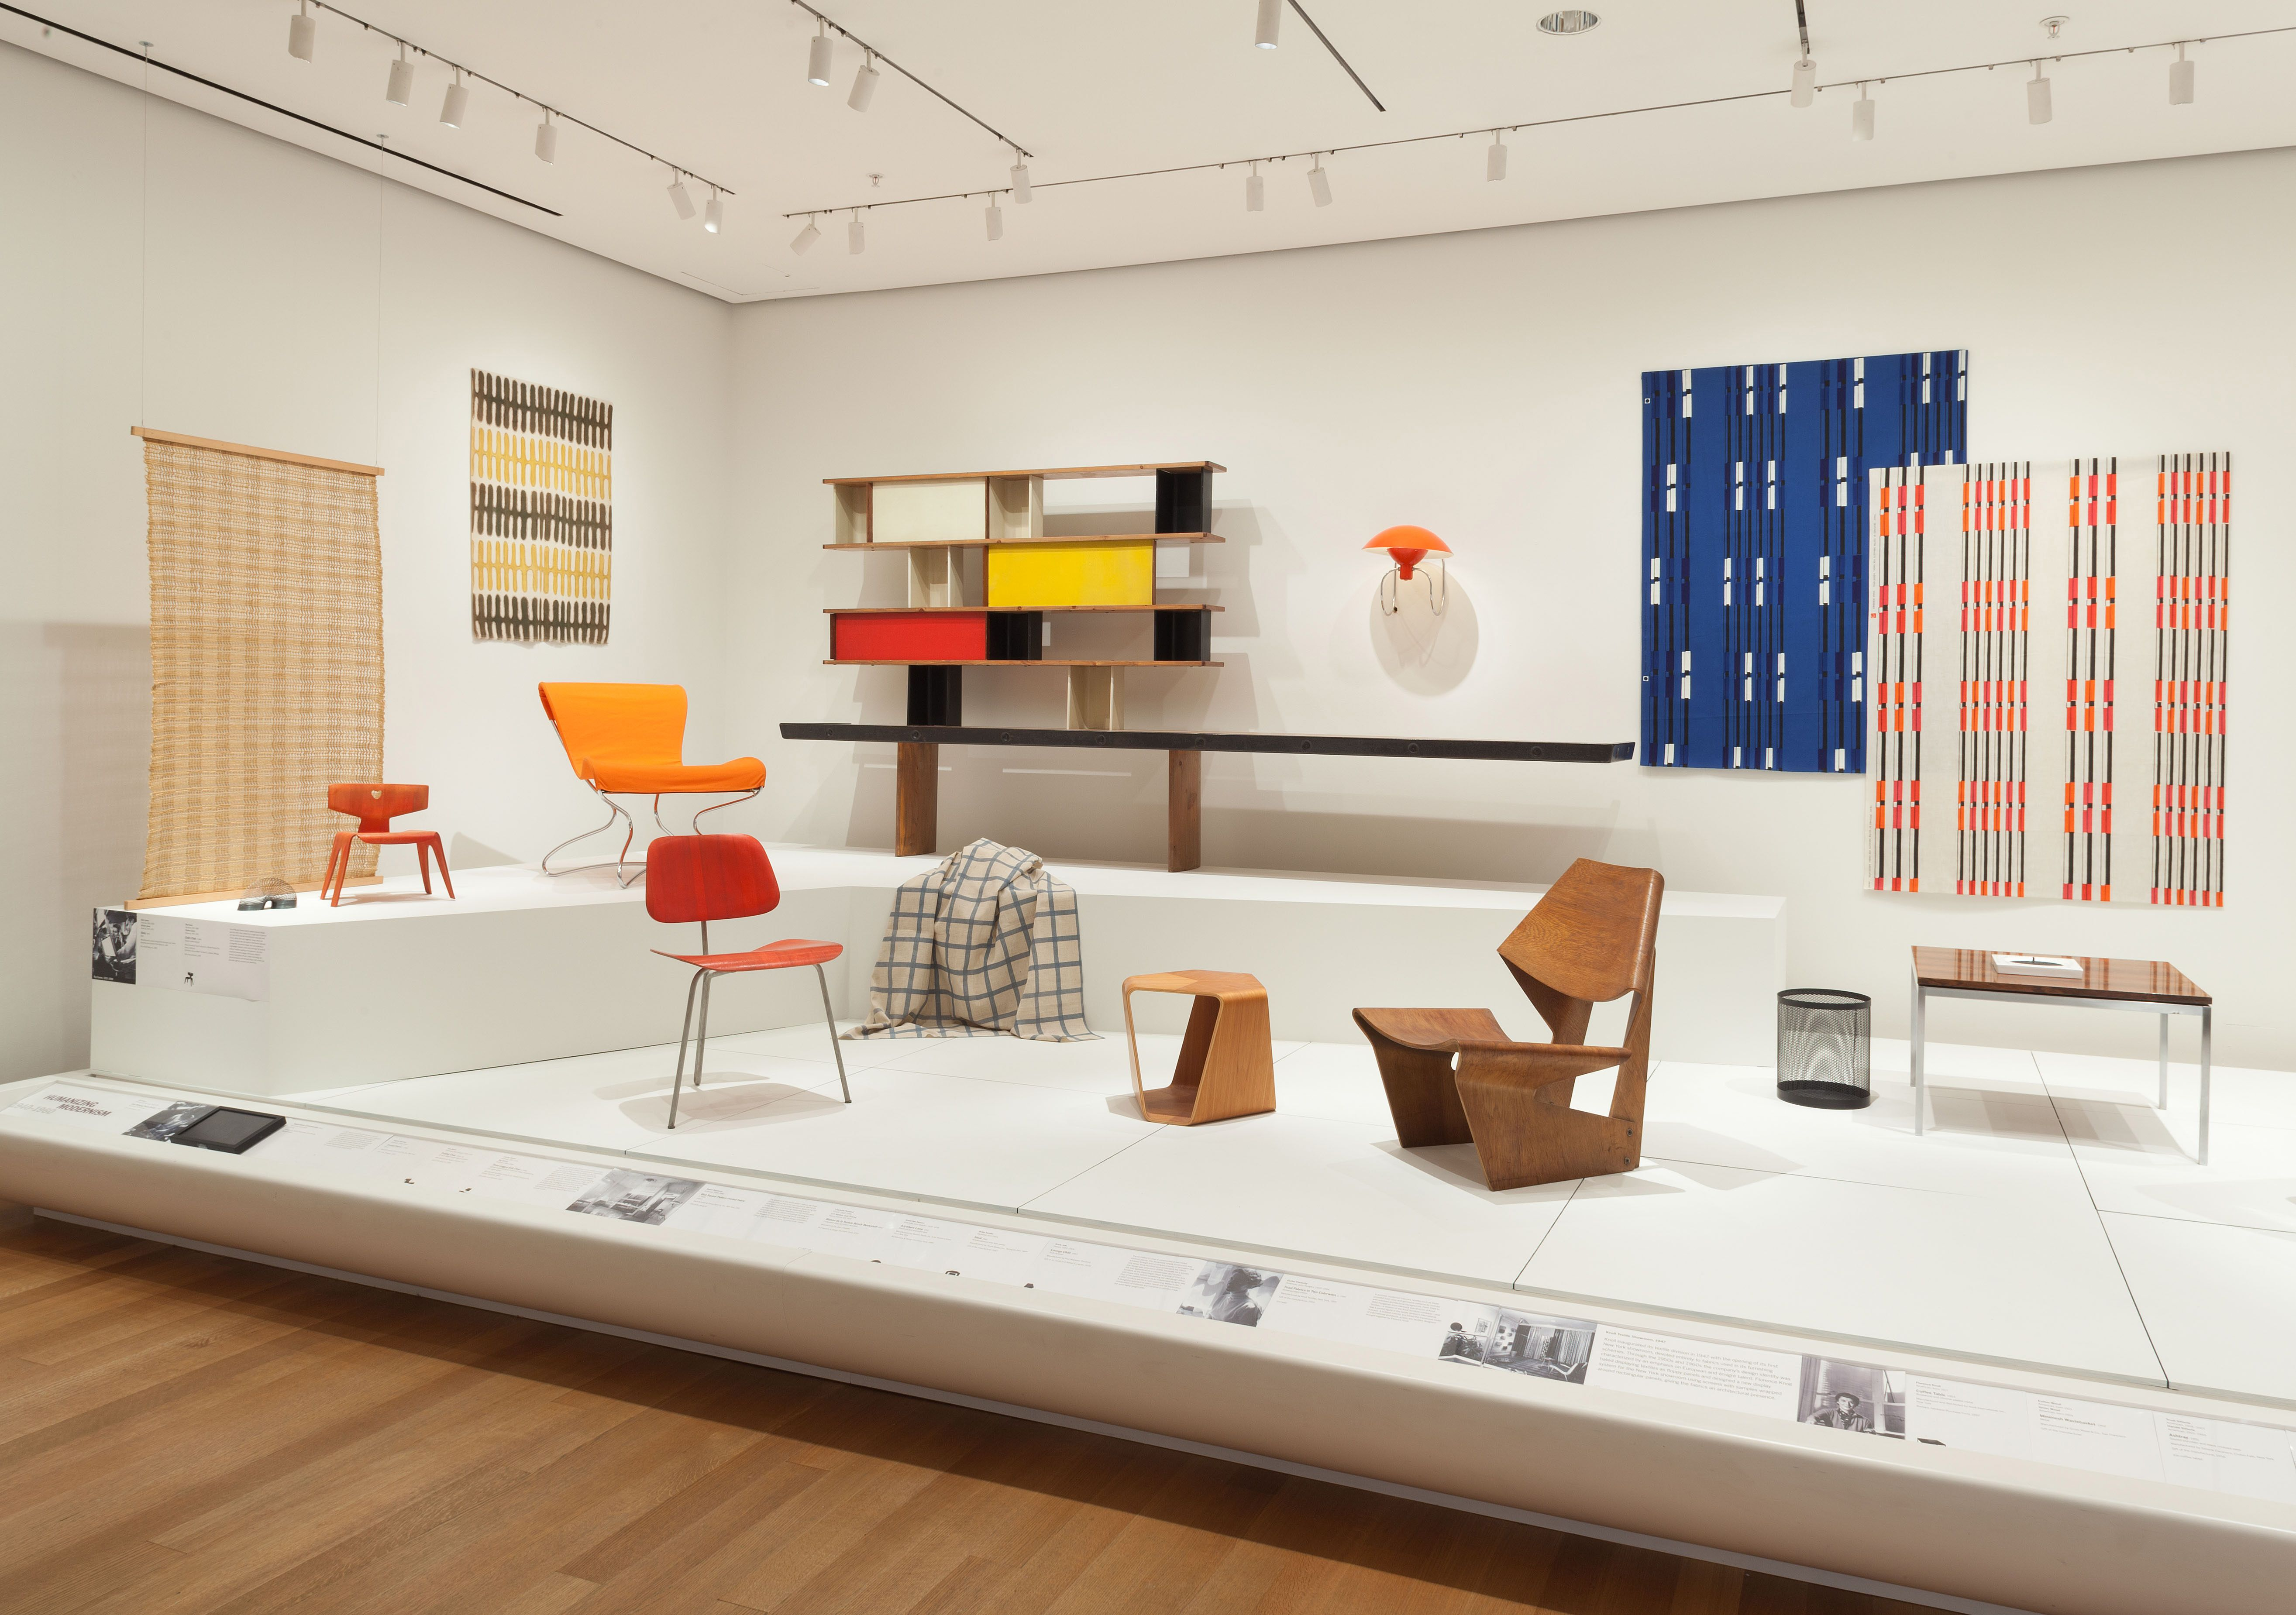 Modern Furniture History moma museum display of modern furniture - google search